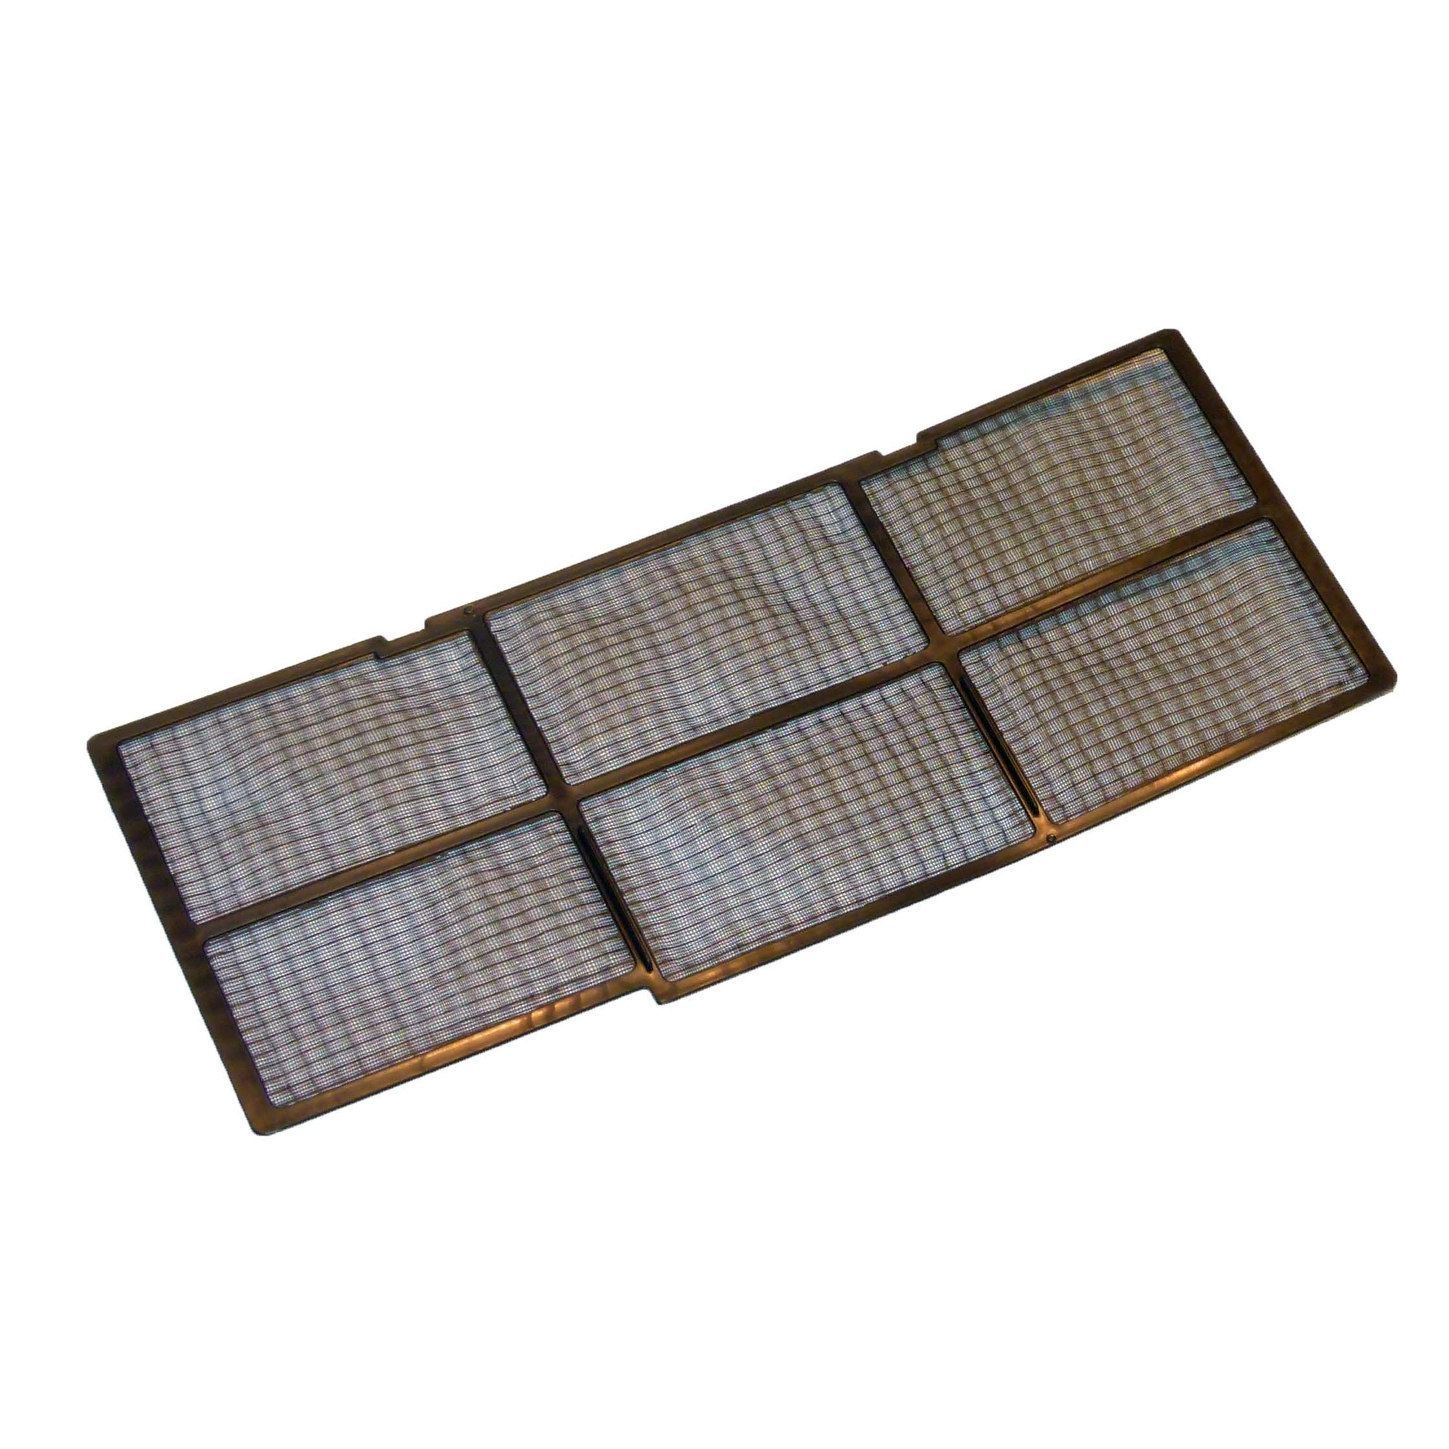 new oem danby air conditioner filter originally shipped with